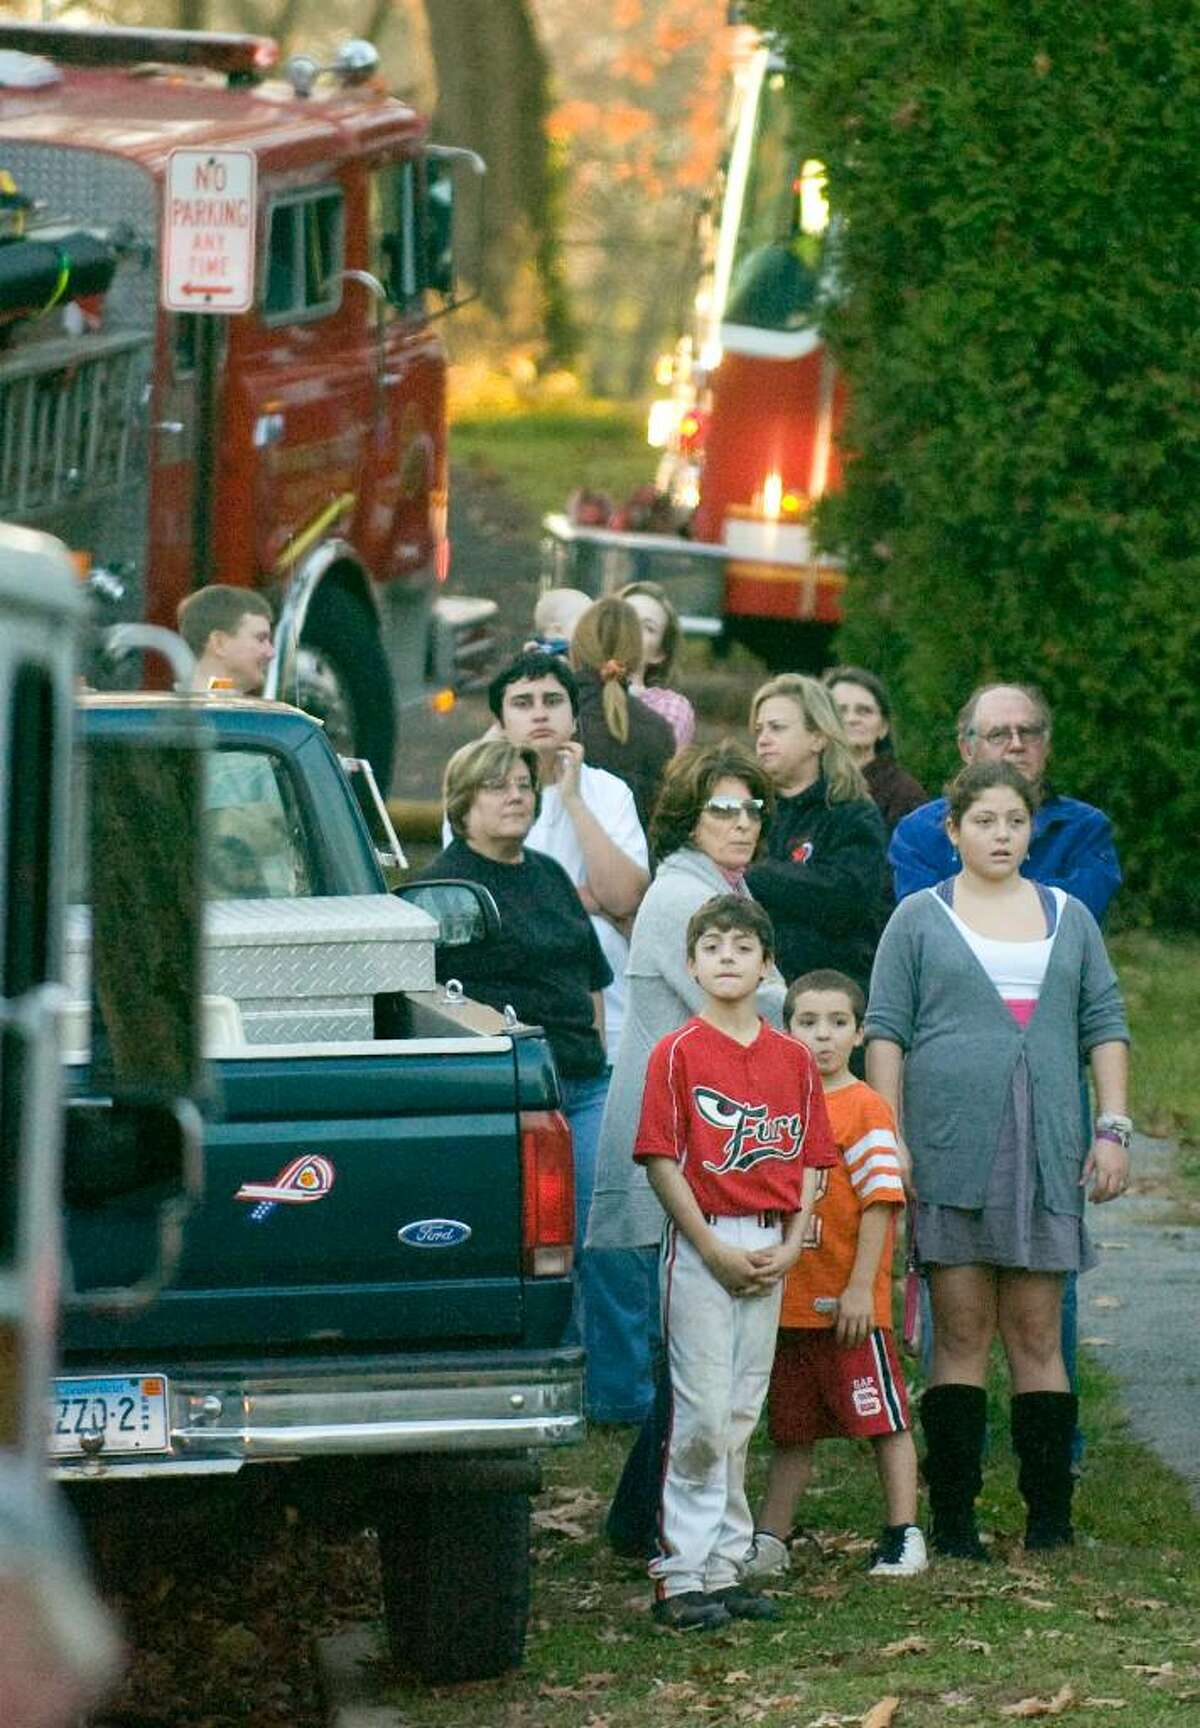 while firefighters battle a fire on Gilford St. in Stamford, Nov. 3, 2009.